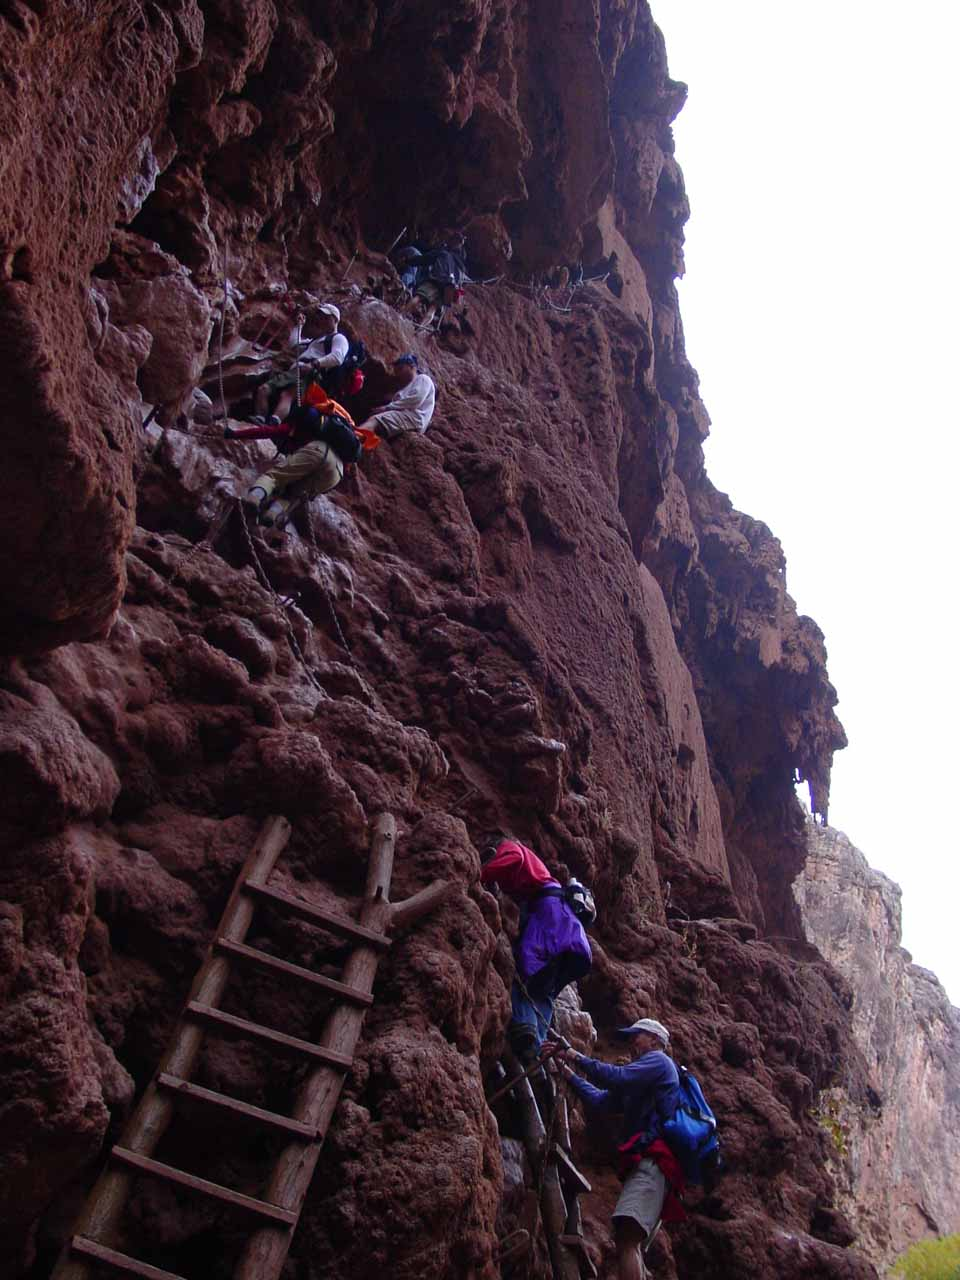 The steep descent to the base of Mooney Falls